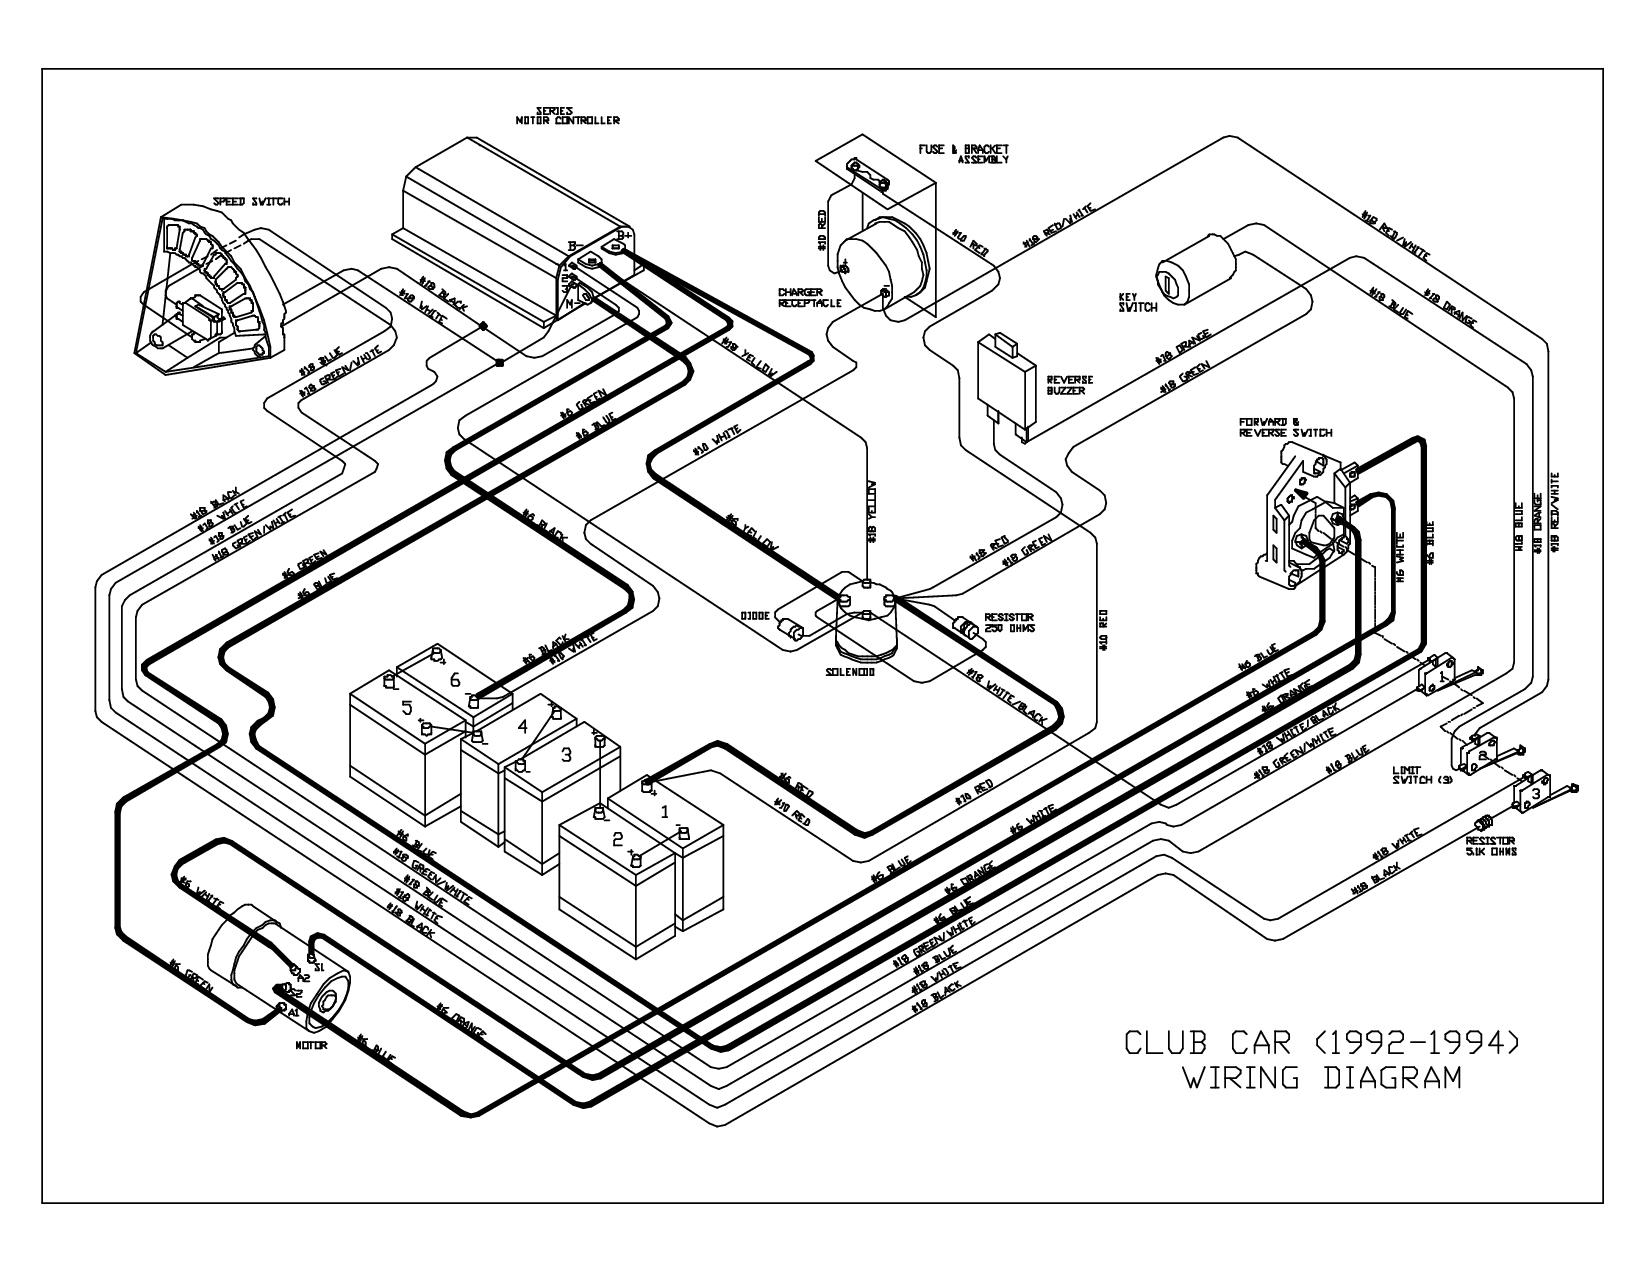 Club Car Wiring Diagram 36 Volt 5A247521D8047 And 91 At Club Car - 36 Volt Golf Cart Wiring Diagram